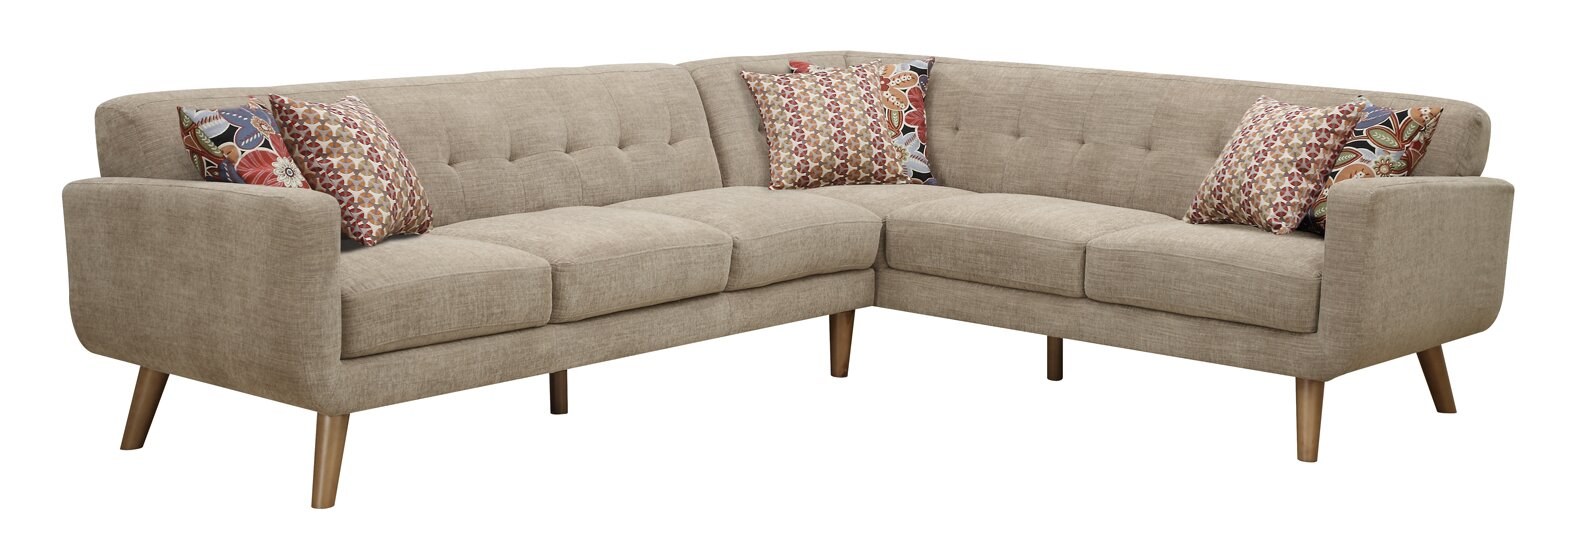 Relic Sectional Collection